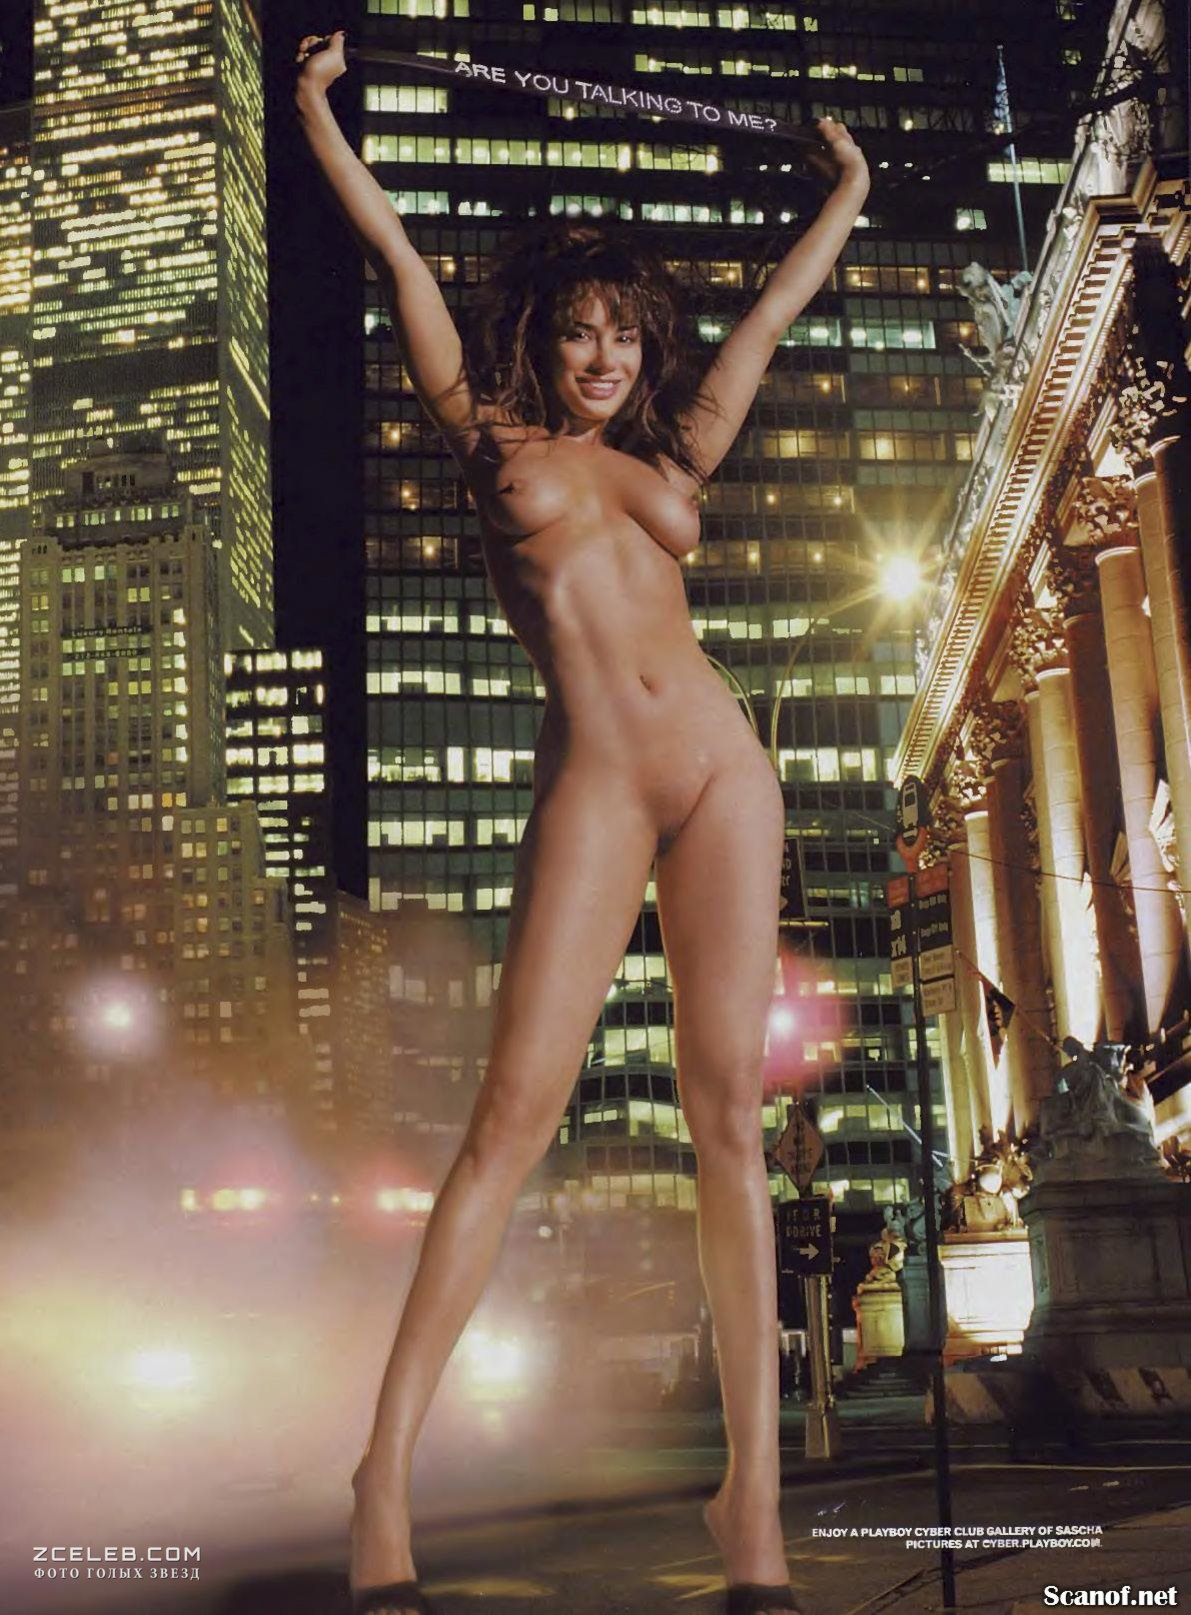 We provide nude women of enron free